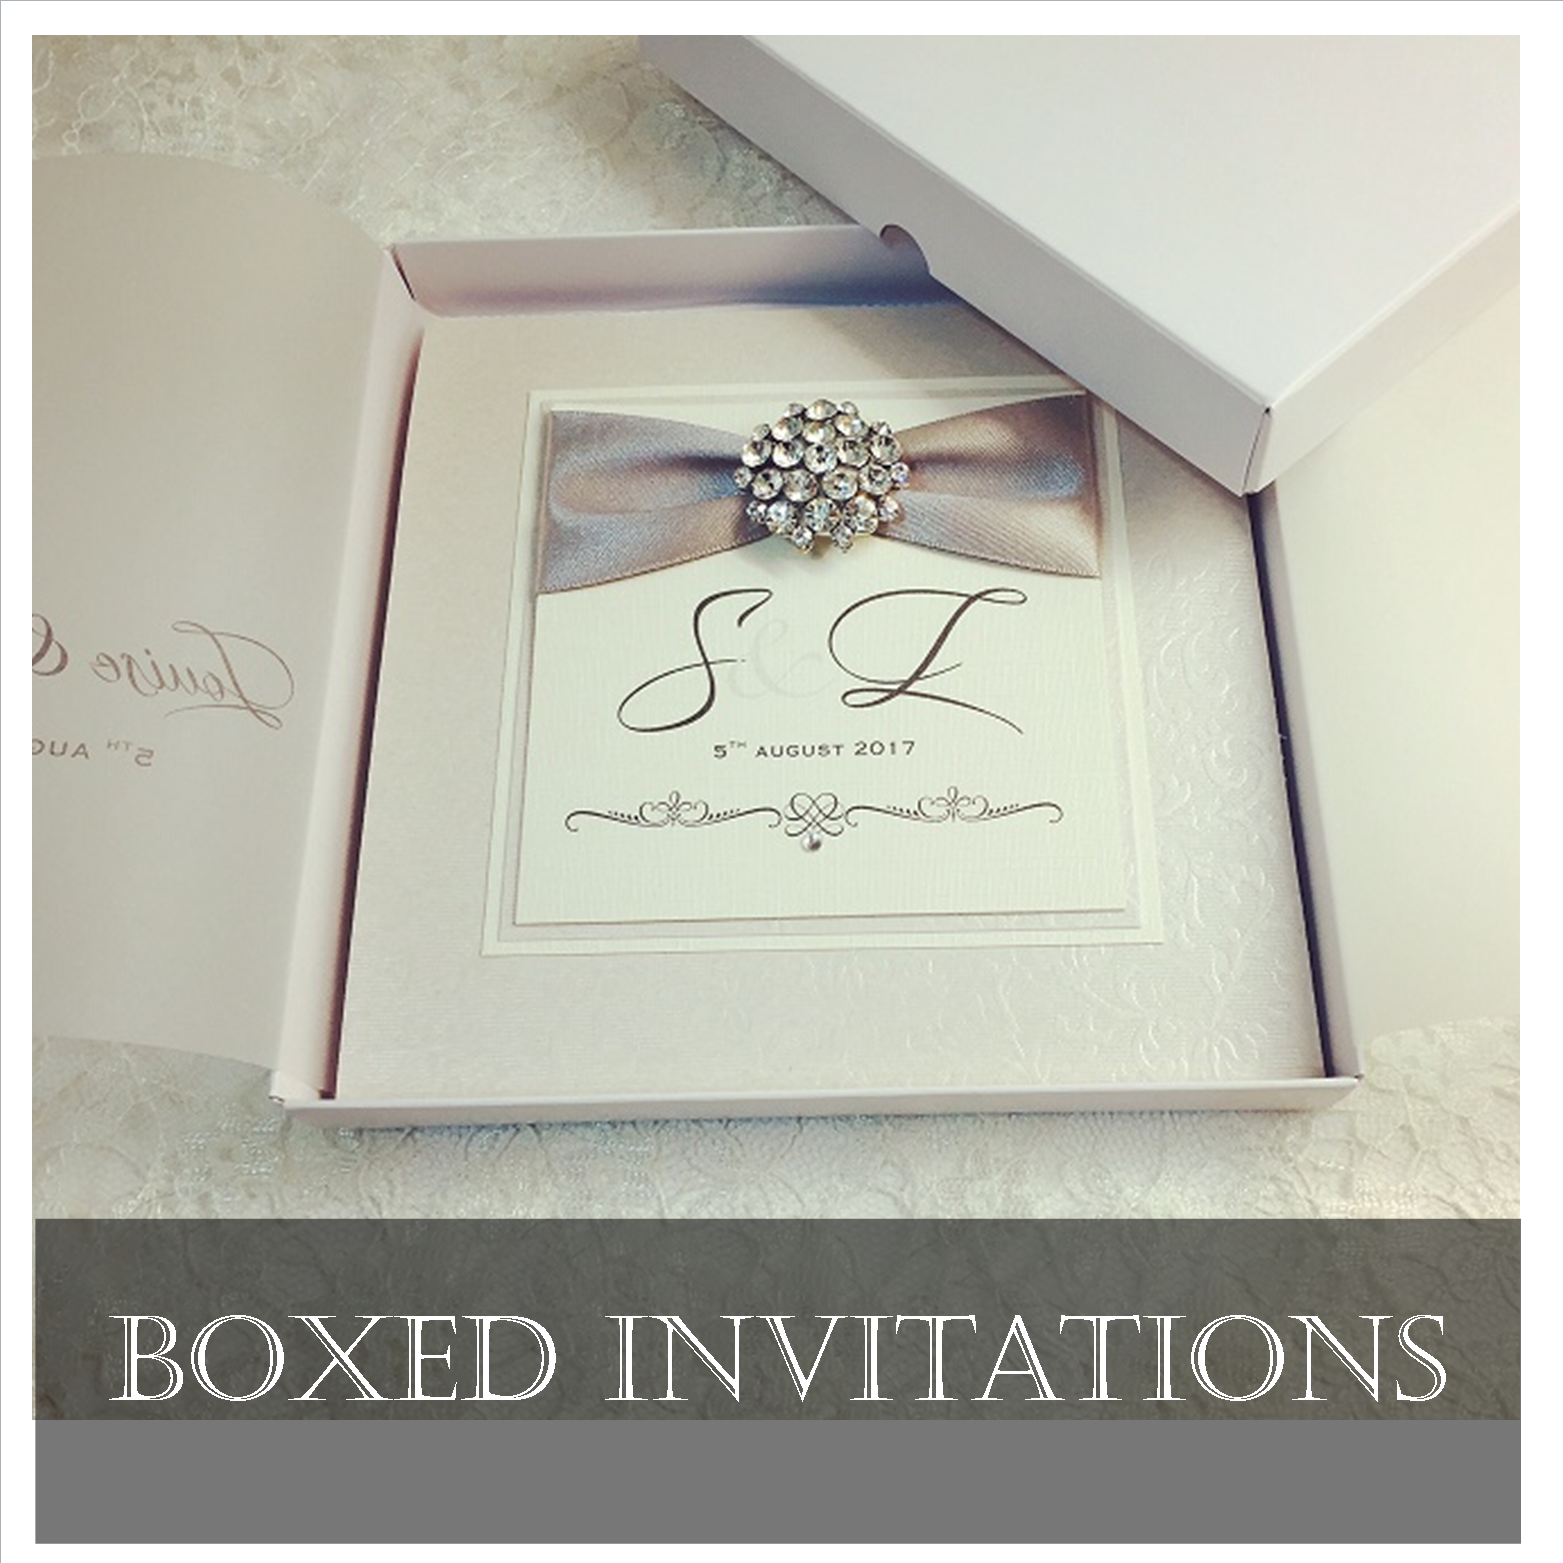 Luxury boxed wedding invitations with elegant brooches